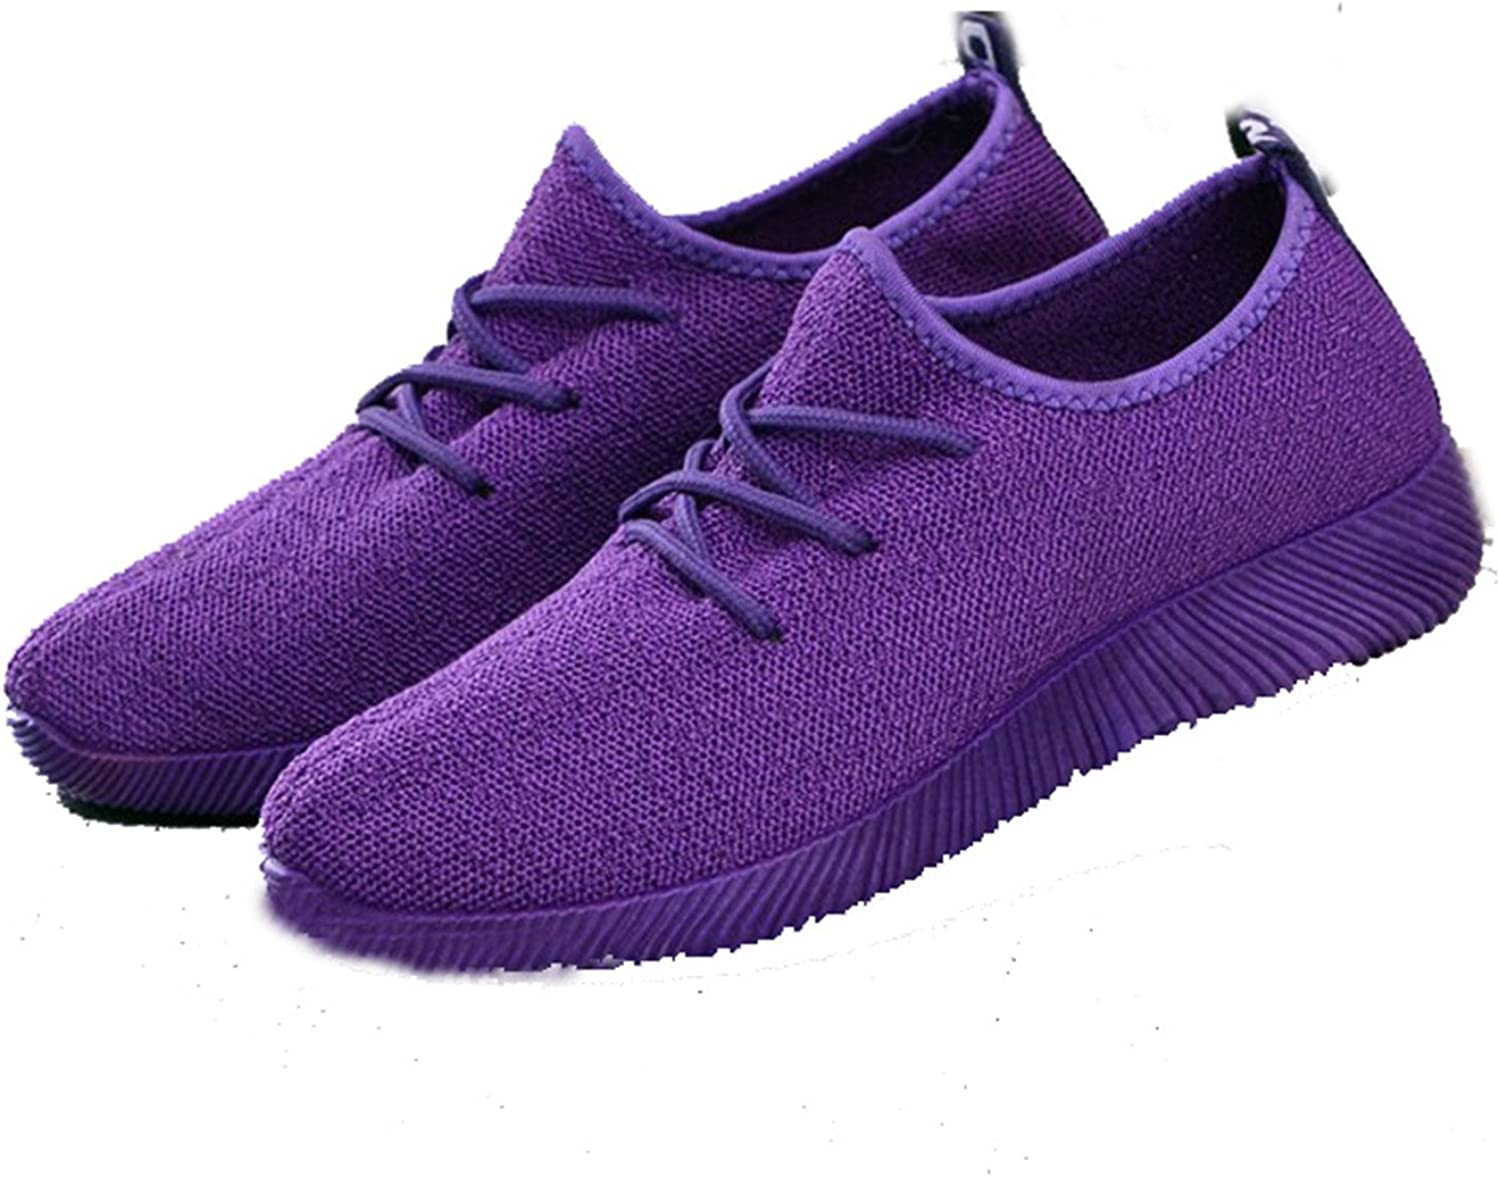 Better Annie Women's Casual Breathable Air Mesh shoes, Lightweight Slip On, Black White Brown Purple Pink Ladies Wlaking shoes, Summer Flats